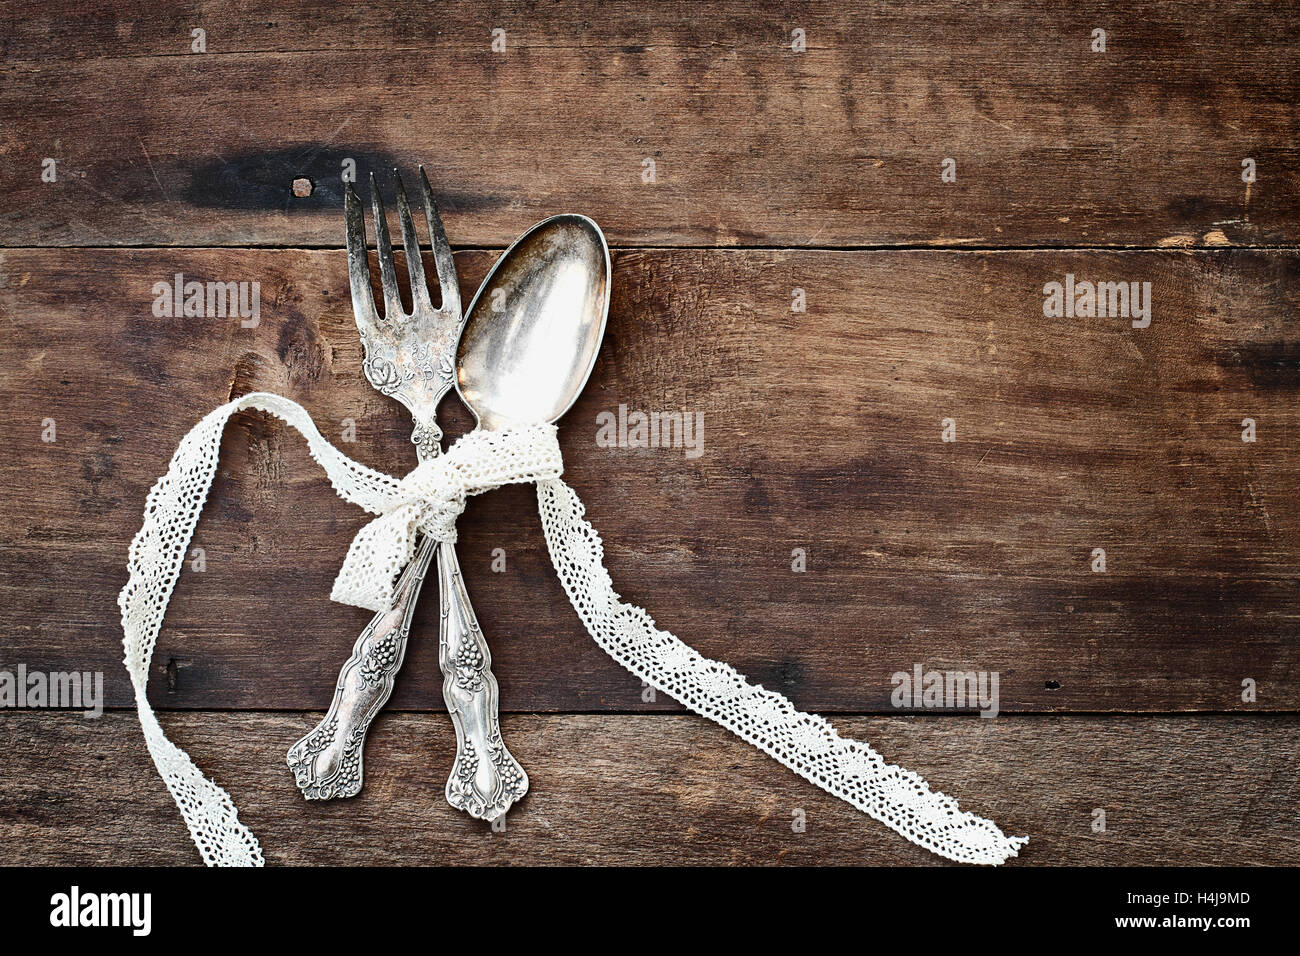 Antique Silverware Spoon And Fork Tied With Lace Ribbon Over A Rustic Old Wooden Background Grunge Like Feel